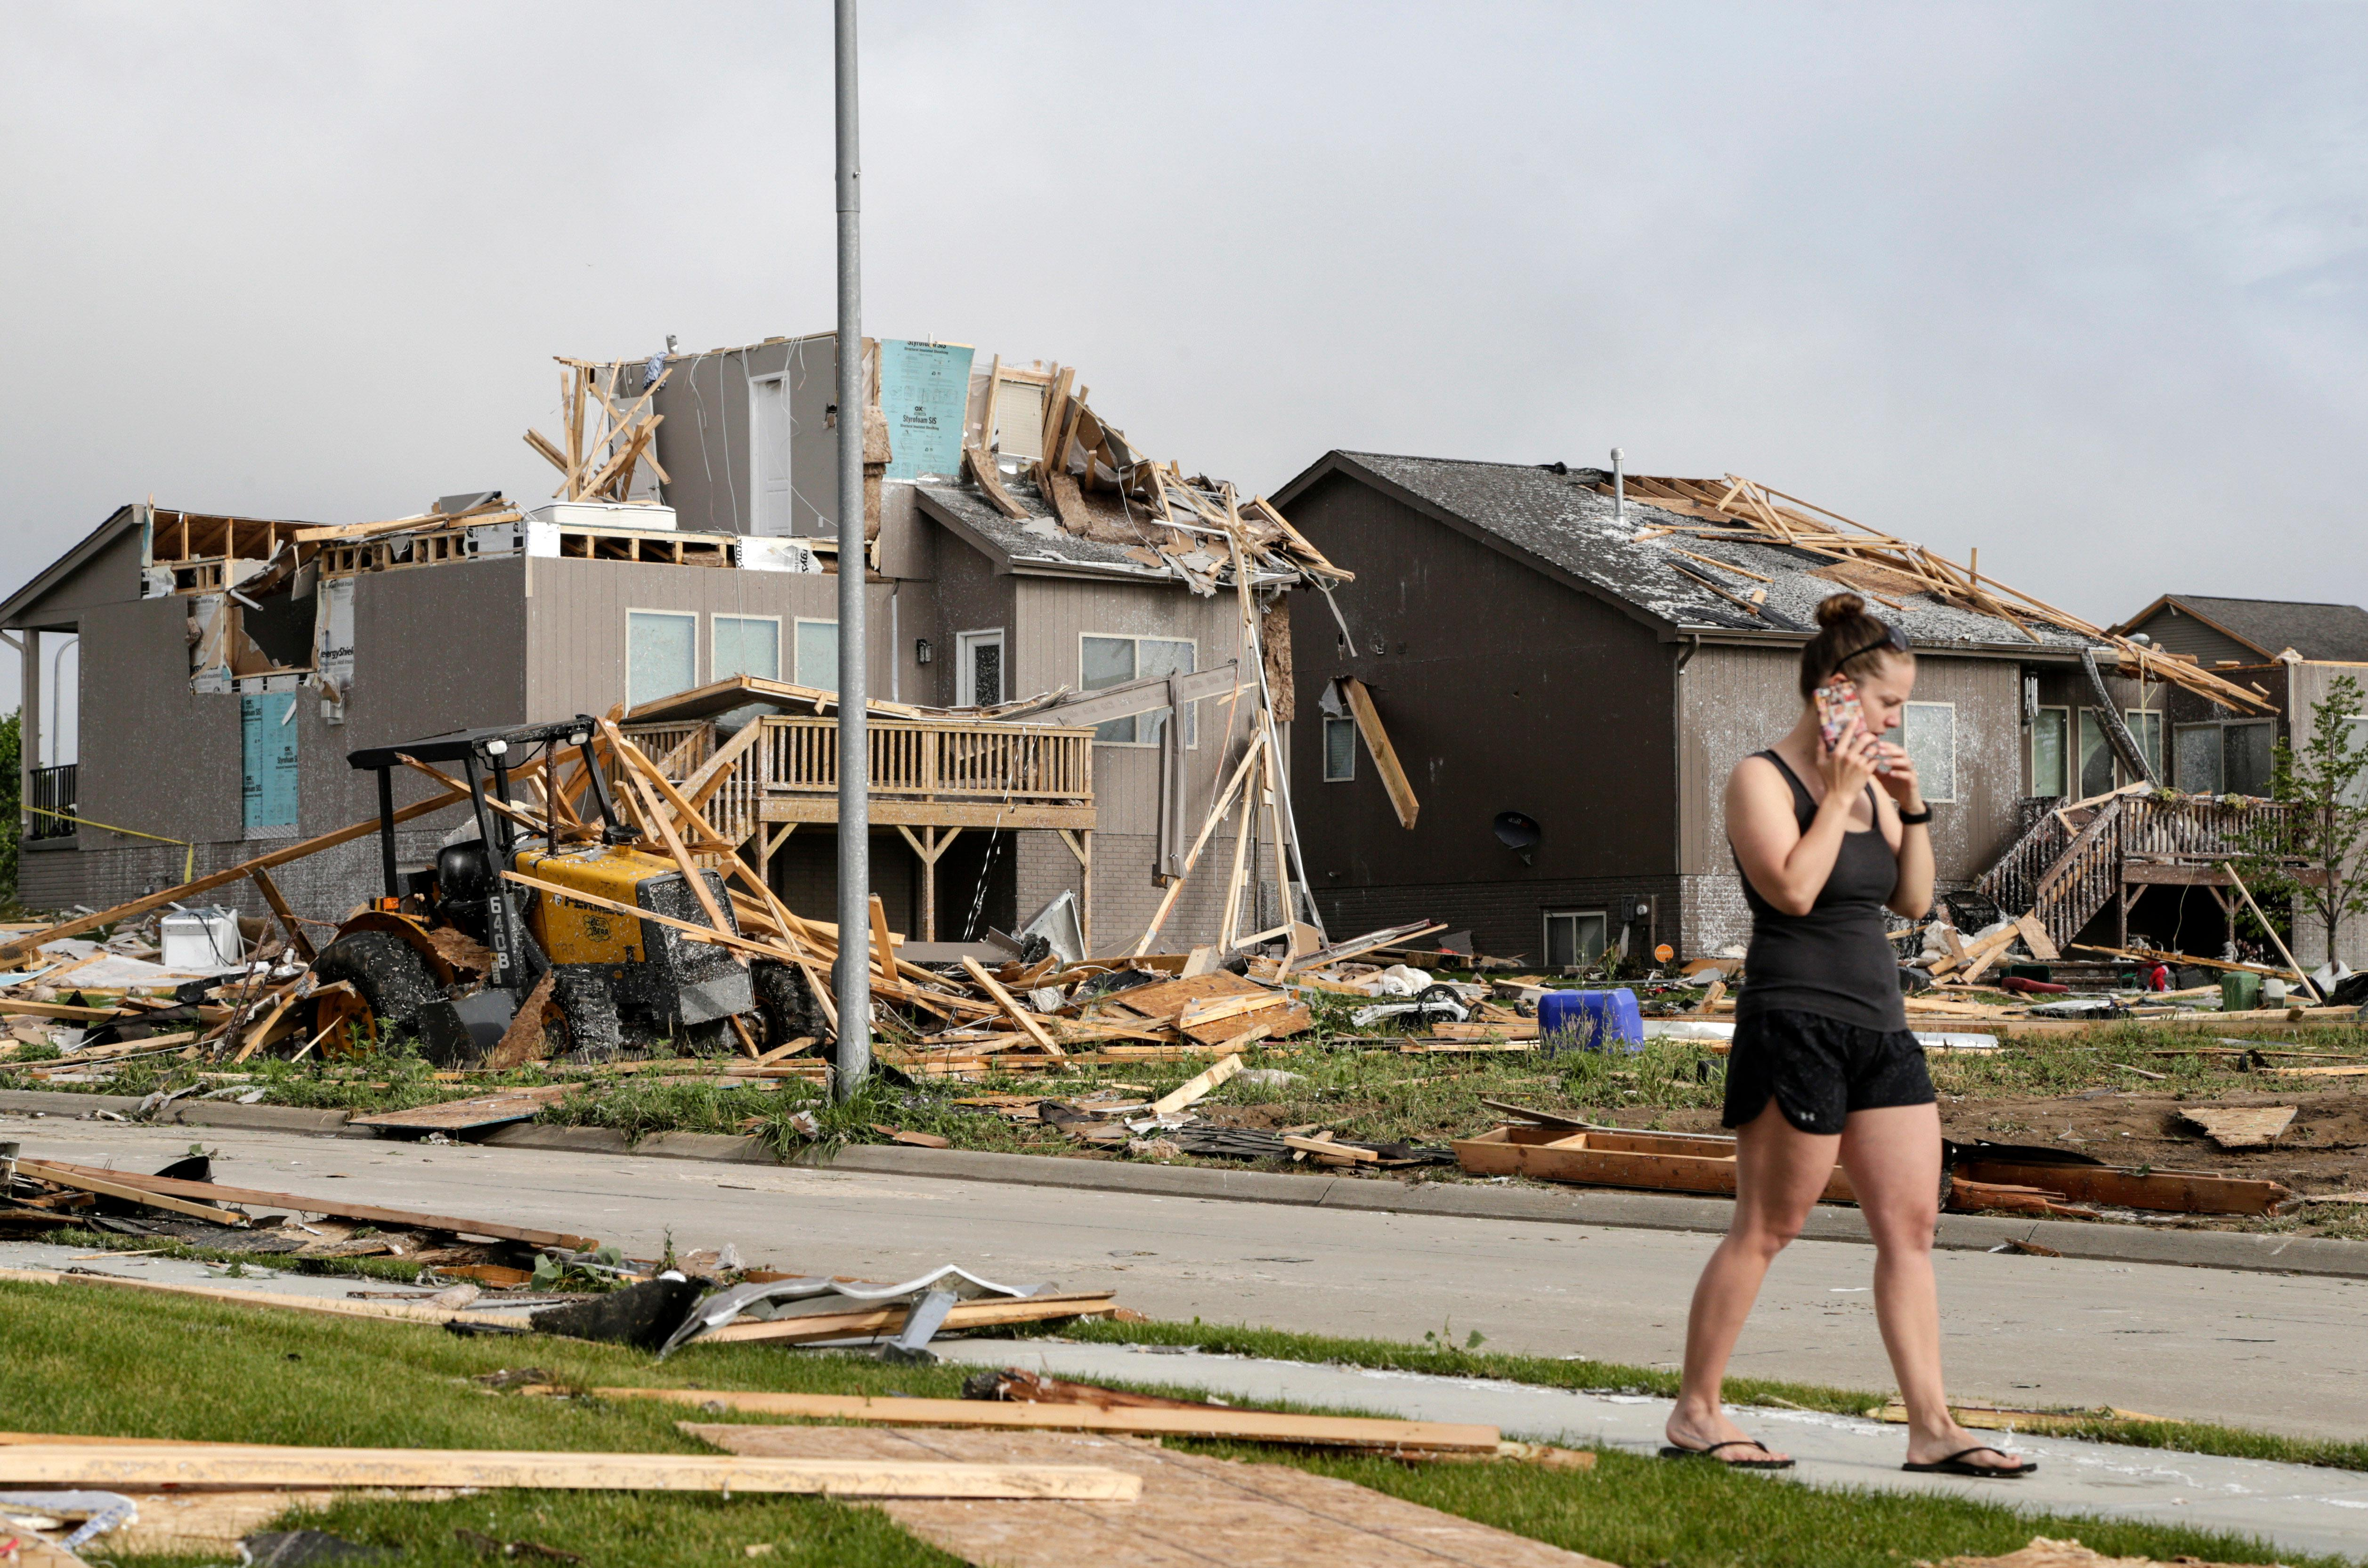 A neighbor whose home was damaged by a storm talks on the phone in front of a row of damaged homes in the Hyda Hills neighborhood in Bellevue, Neb., Saturday, June 17, 2017. A severe weather front passed through the area the previous evening. (AP Photo/Nati Harnik)